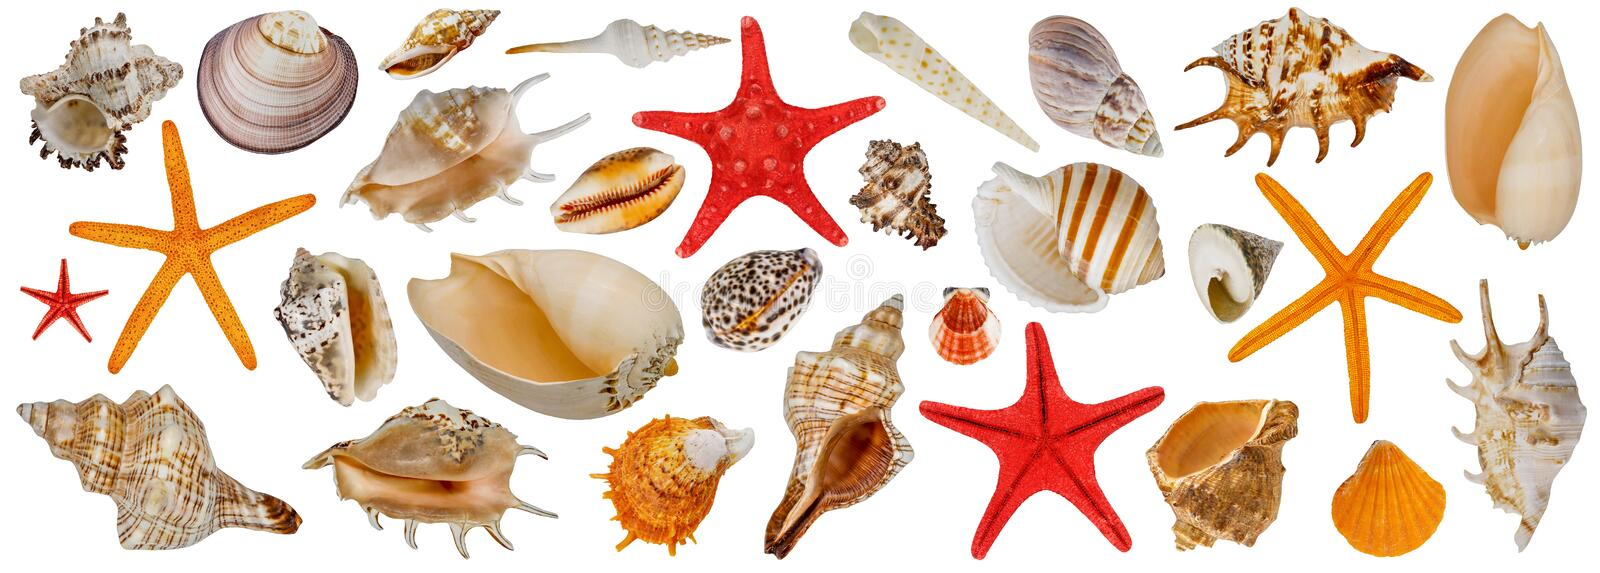 Set of different sea shells. Starfish collection. Isolated on a white background stock images